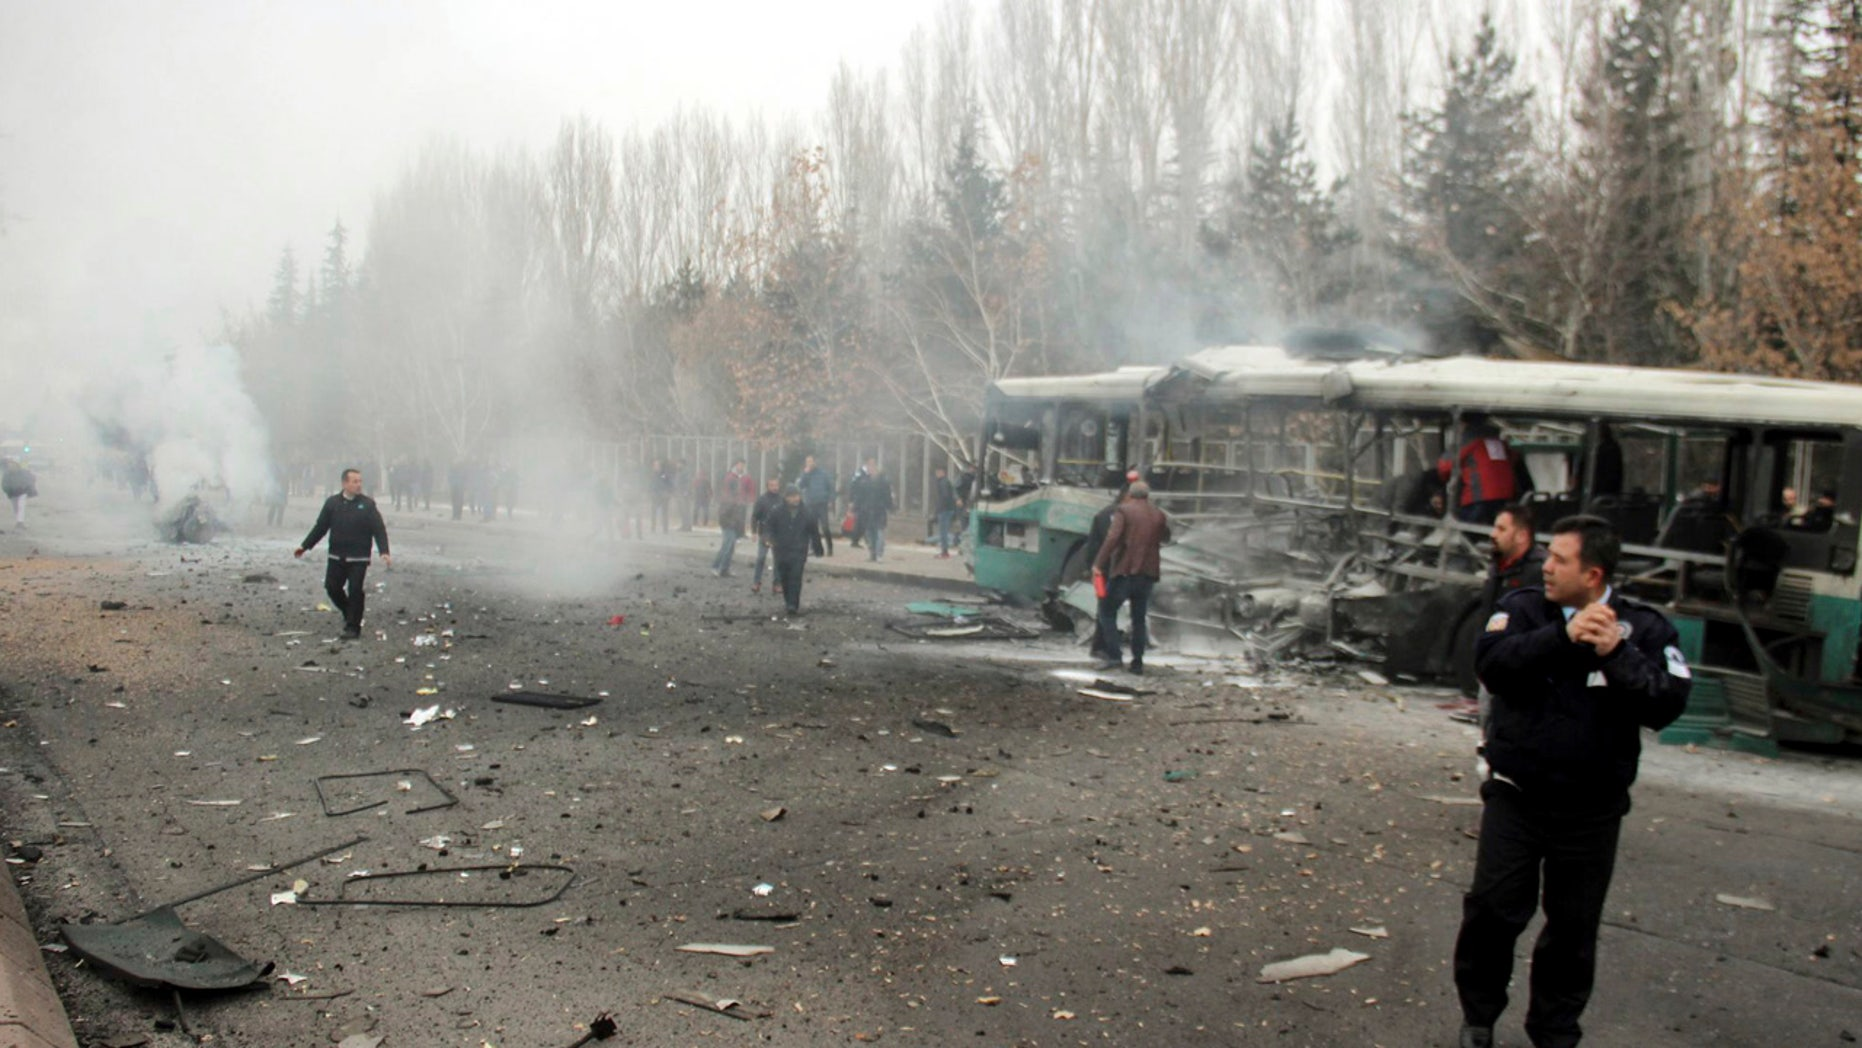 Security officials and people at the scene of a car bomb attack in central Anatolian city of Kayseri, Turkey, Saturday, Dec. 17, 2016.